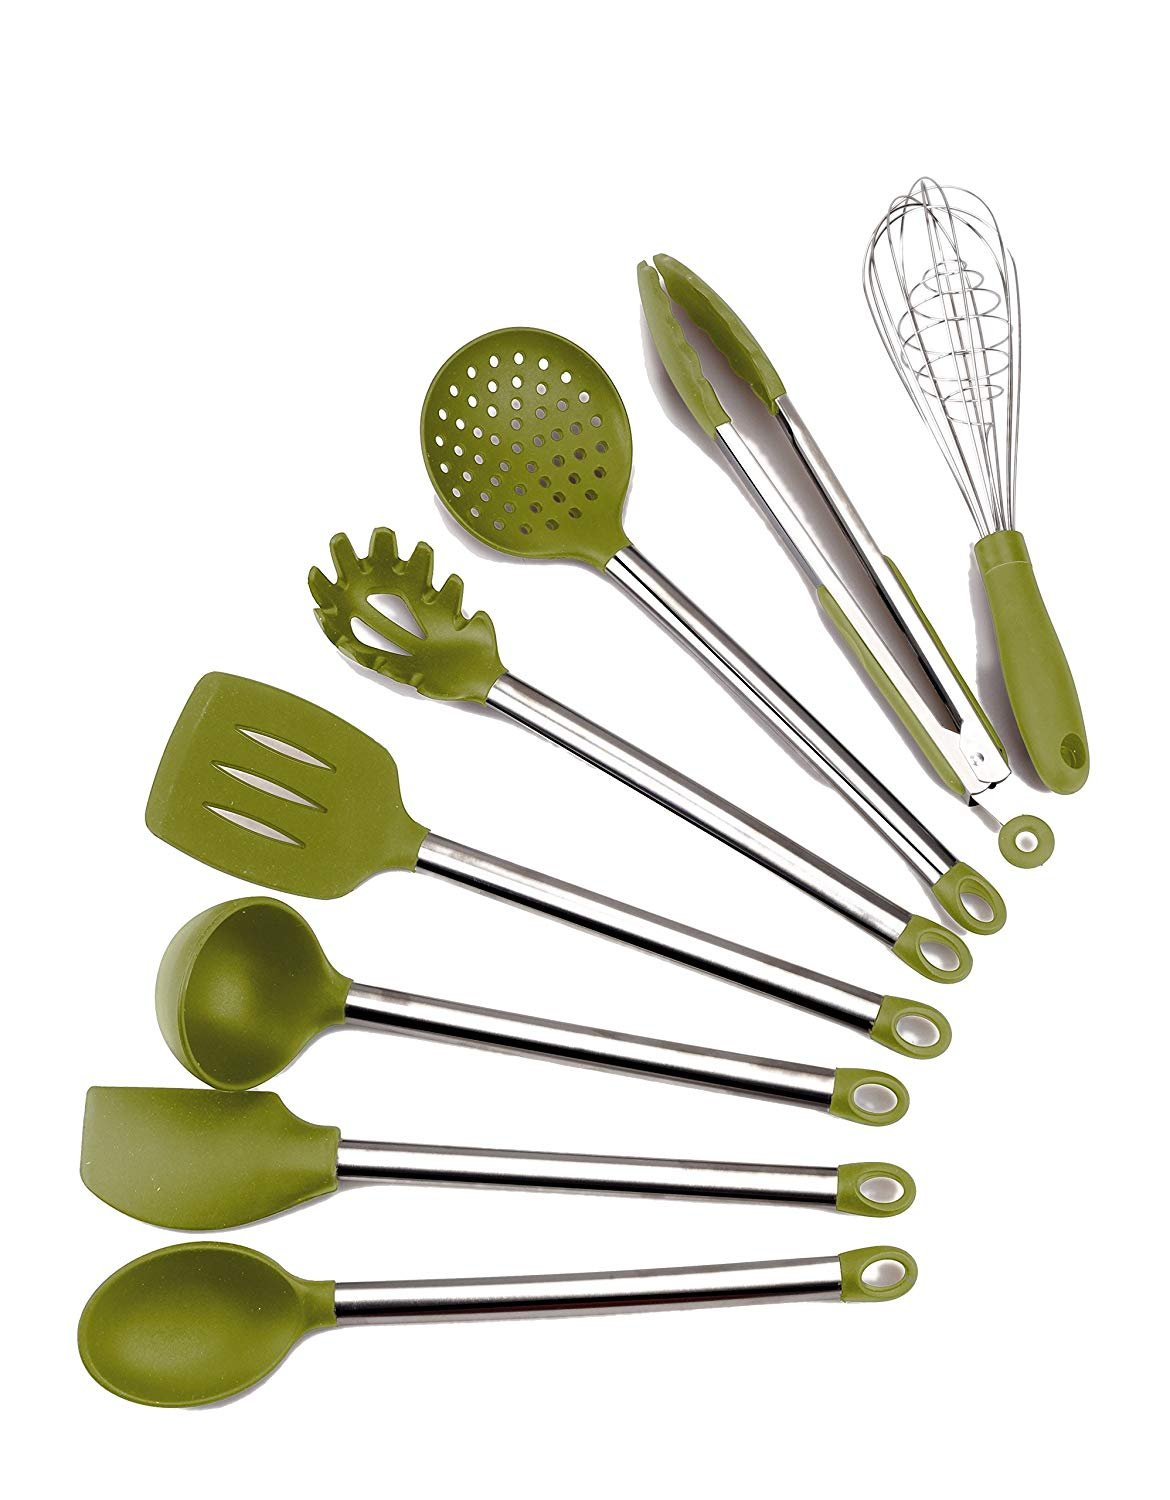 Kitchen Silicone Utensils Set | 8 Piece Silicone & Stainless Steel Cookware Cooking Baking Tools | HeatResistant Non Stick Scratch Resistant FDA Grade | Pasta Server, Spatula and More by Koamatpro